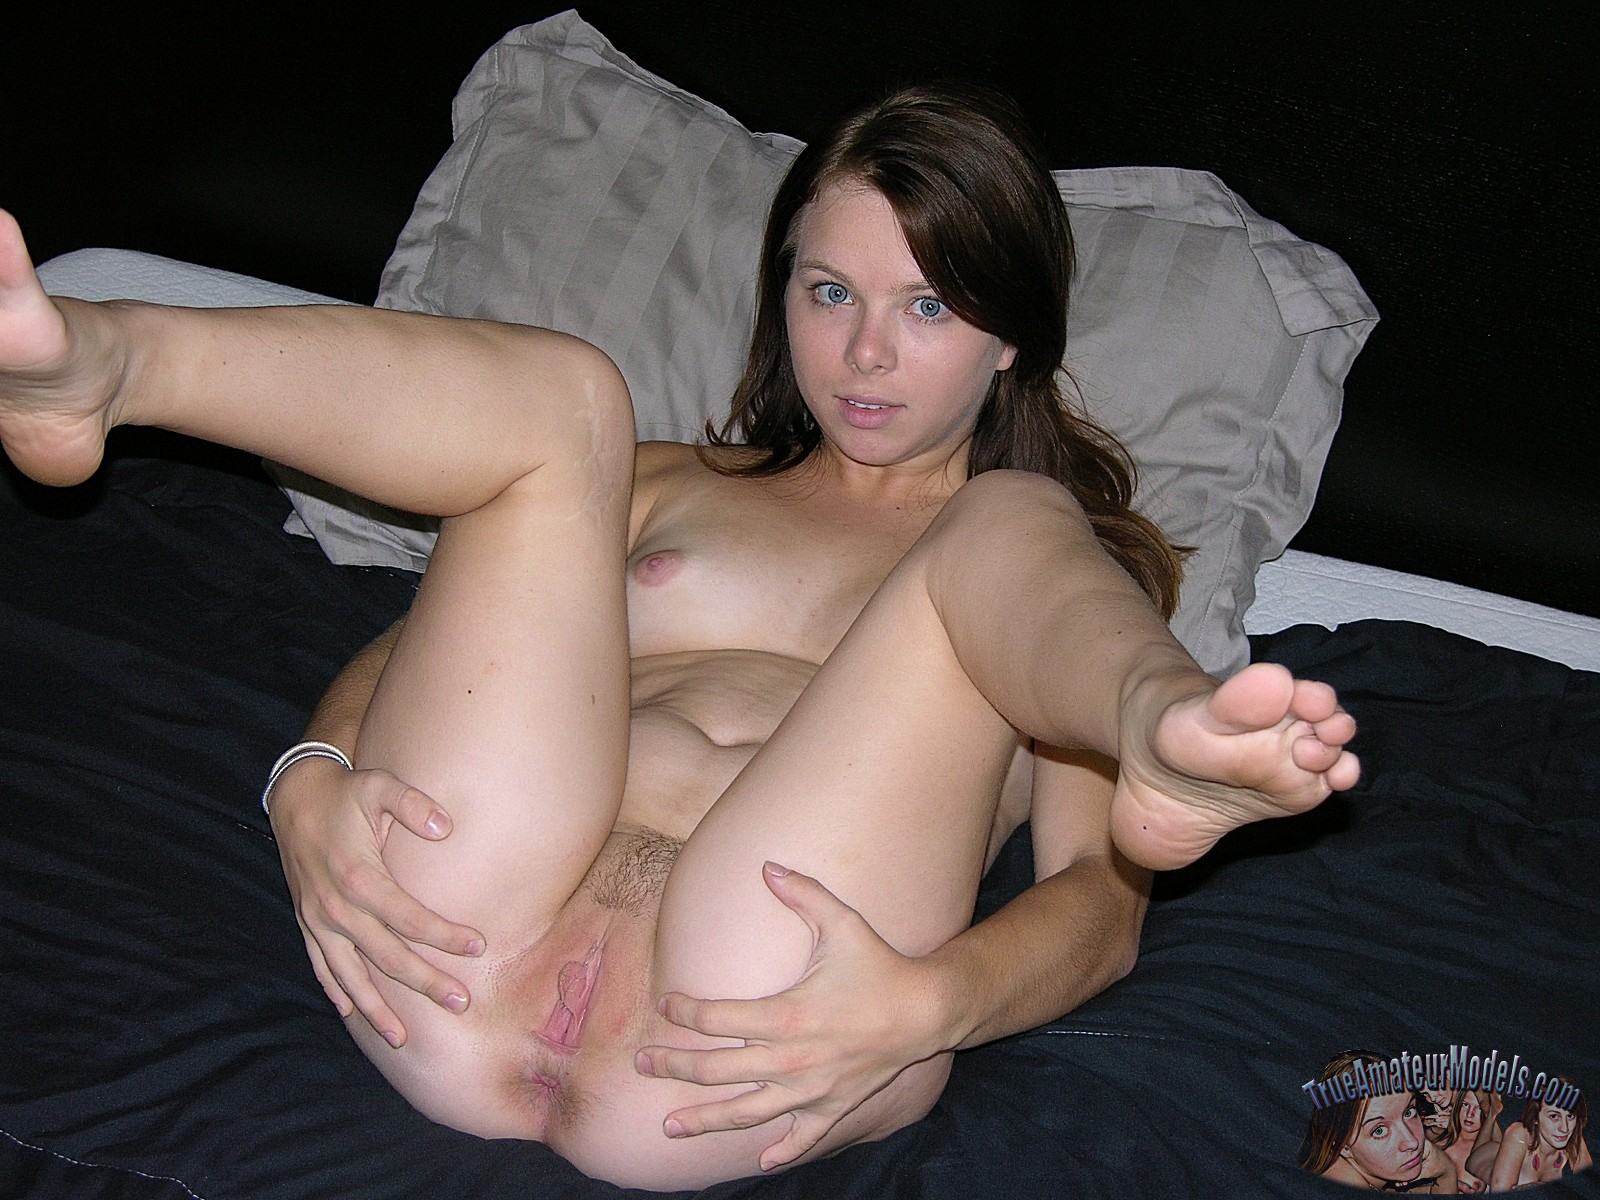 Amatuer spreaded pussy pics - Real Naked Girls